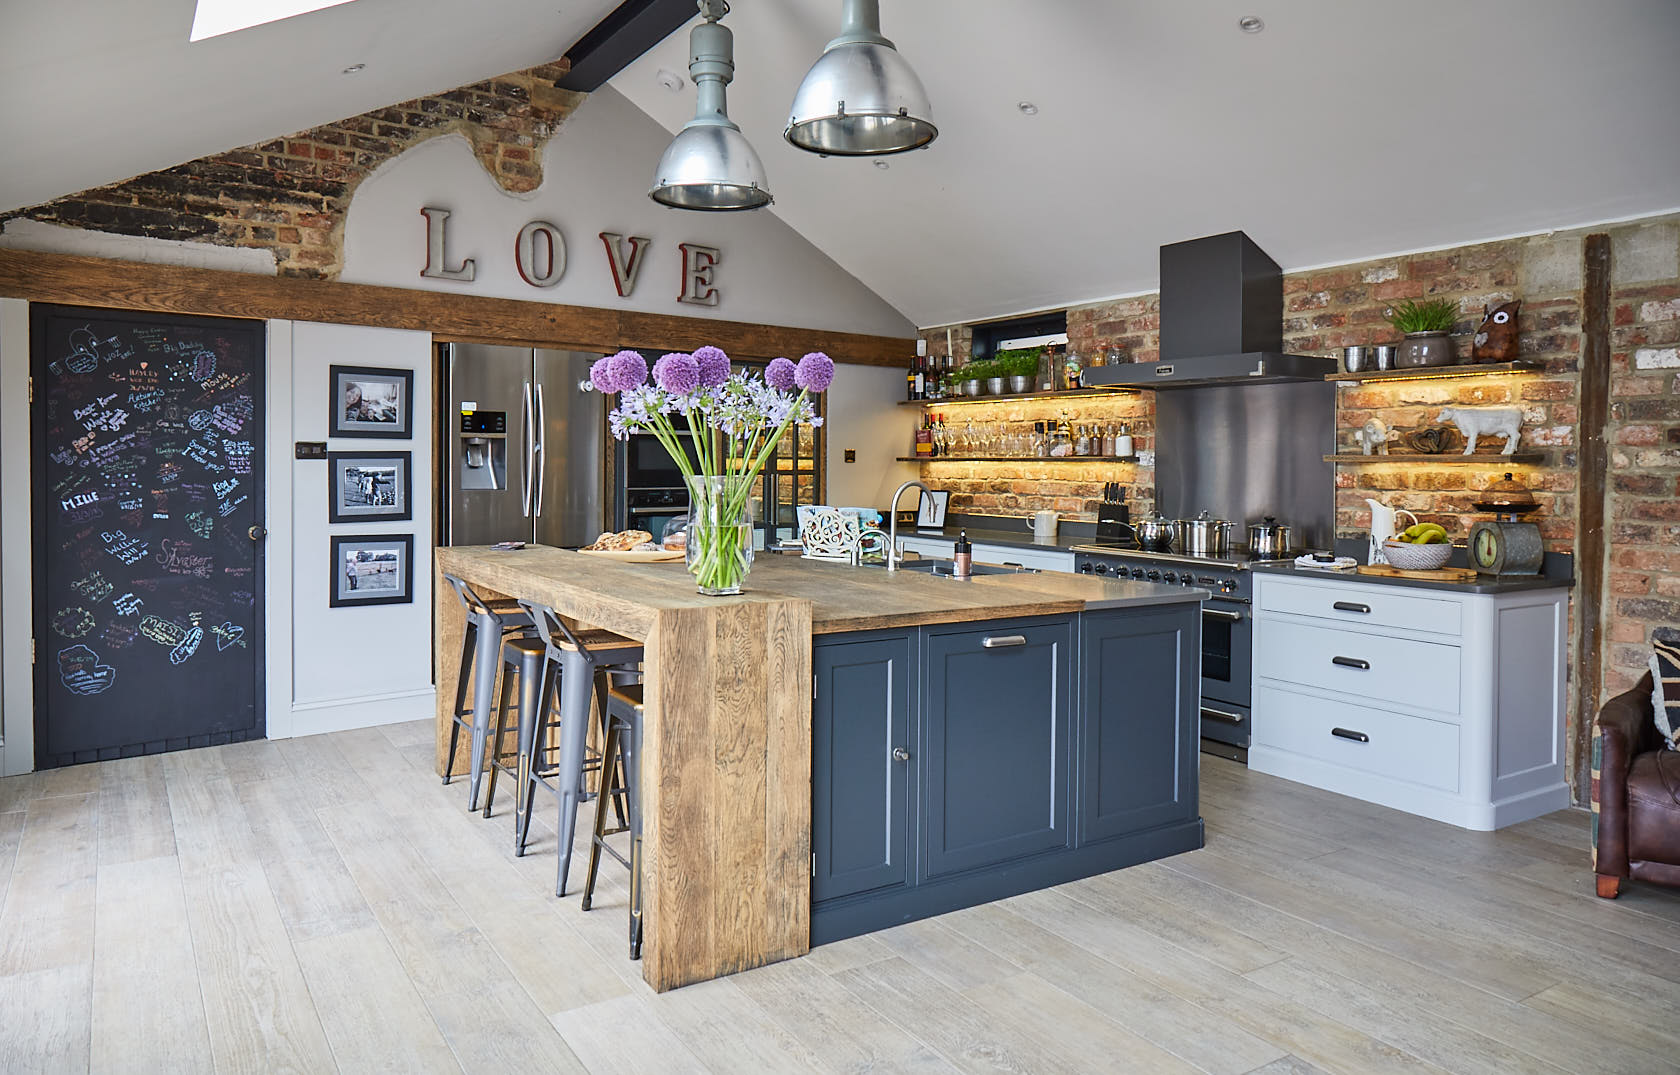 Flowers sit on large bespoke kitchen island with rustic oak breakfast bar and lamp black painted cabinets